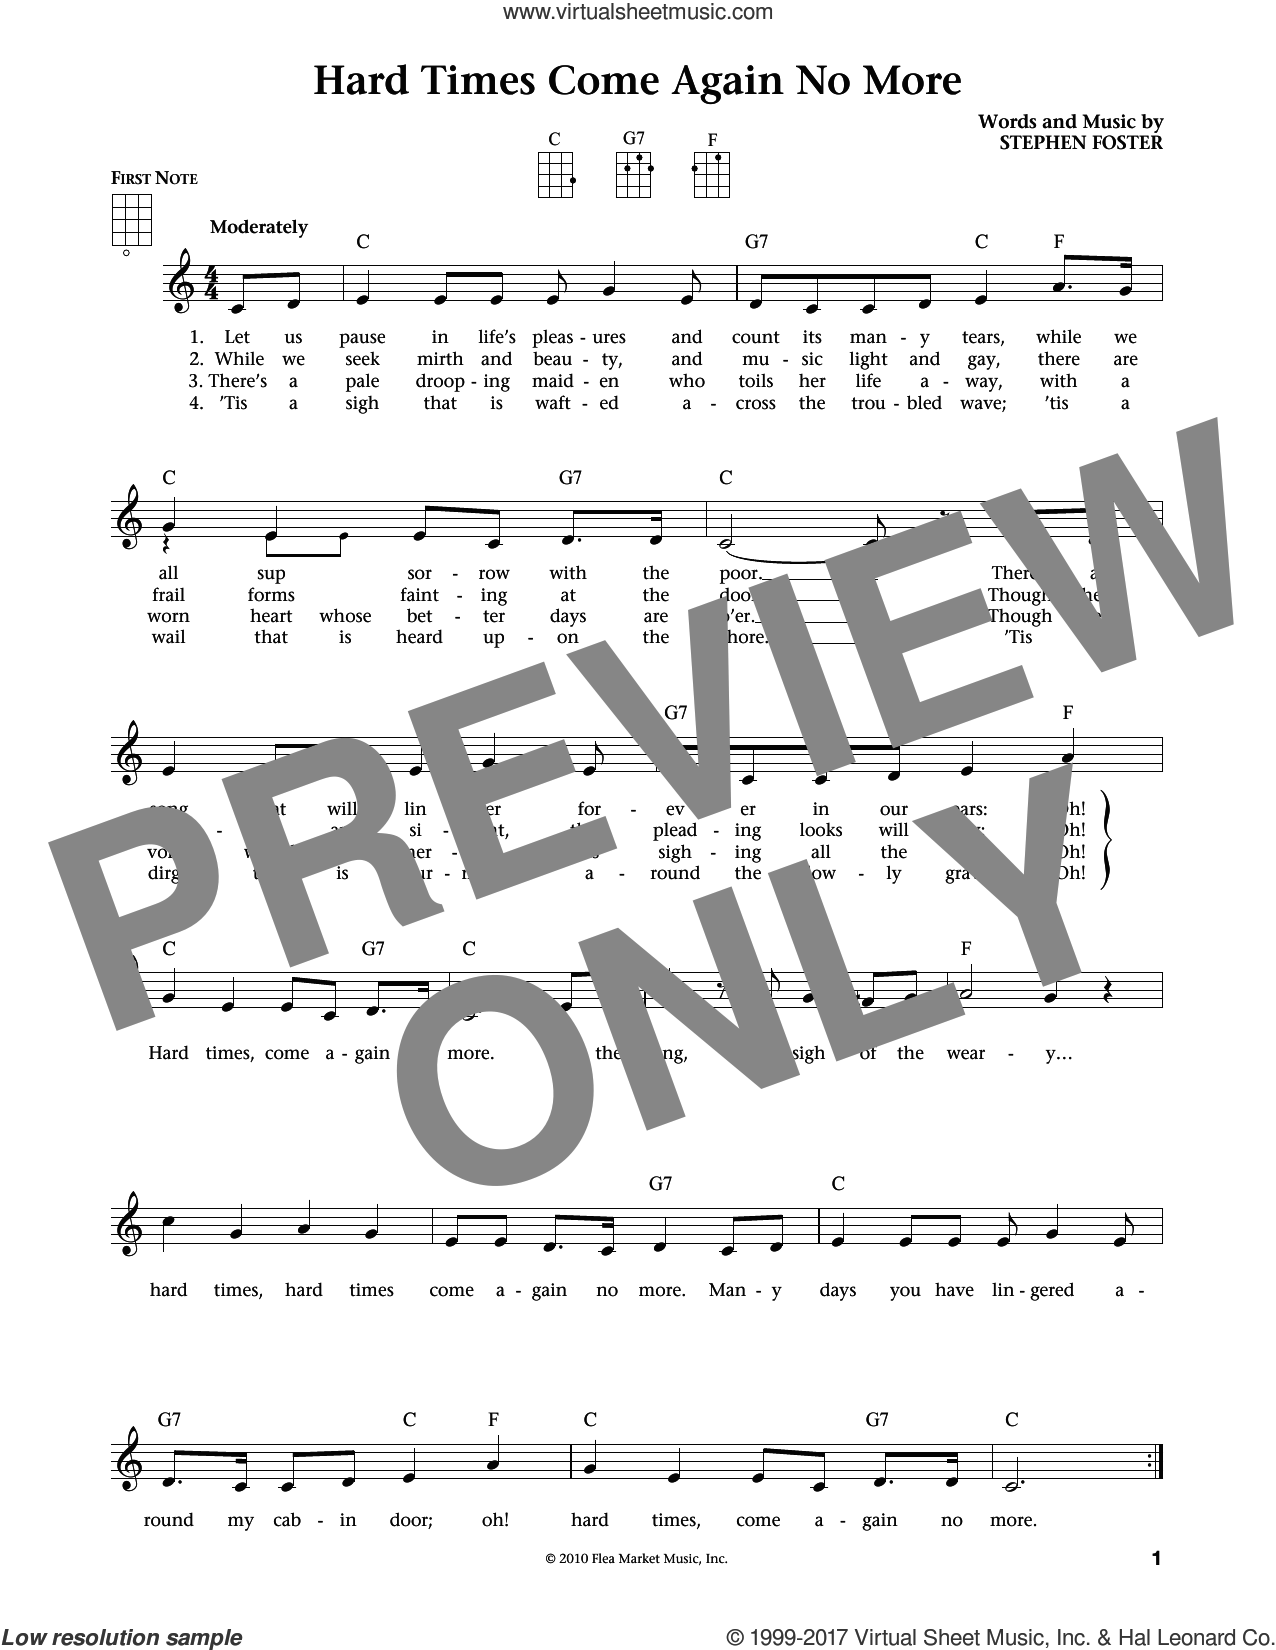 Hard Times Come Again No More (from The Daily Ukulele) (arr. Liz and Jim Beloff) sheet music for ukulele by Stephen Foster, Jim Beloff and Liz Beloff, intermediate skill level